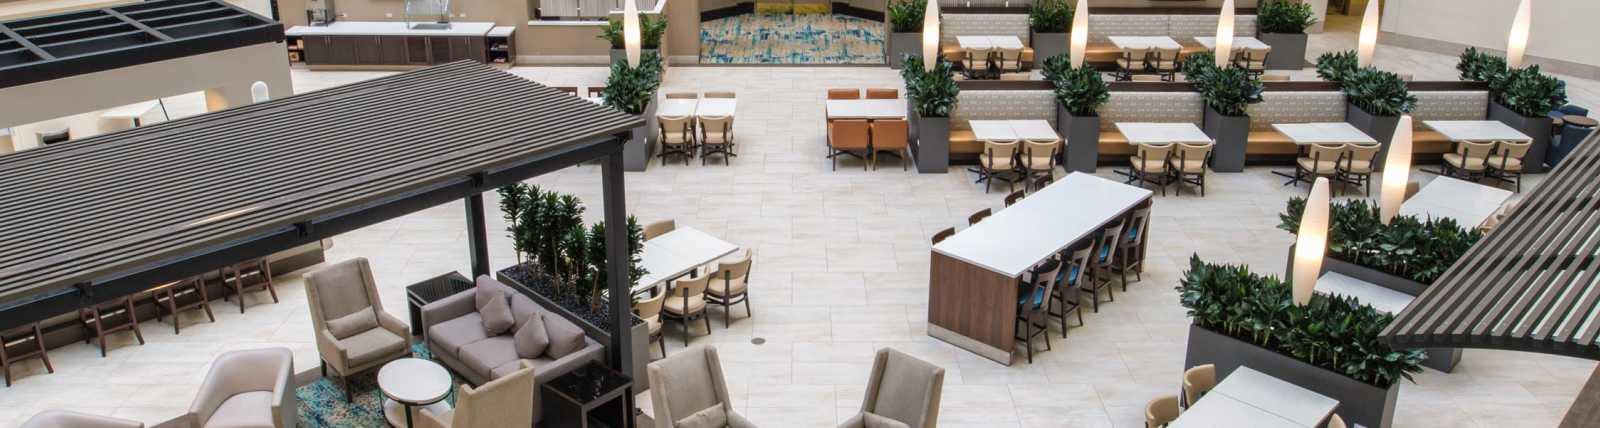 meeting-facility-Embassy_Suites_Seattle-Tacoma_International_Airport_Meeting_Facility-9.jpg